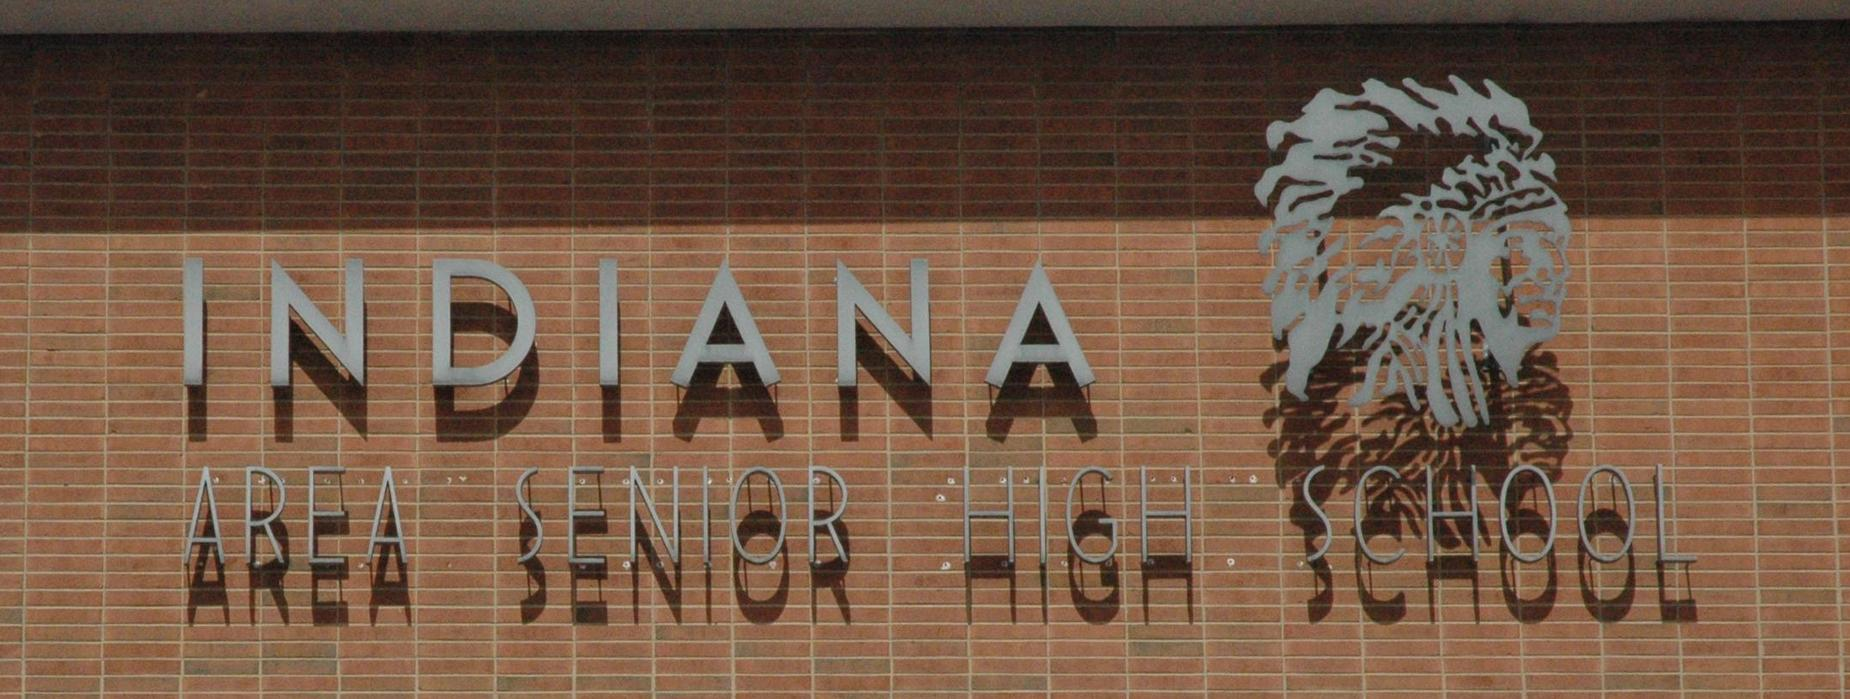 Indiana Area Senior High School